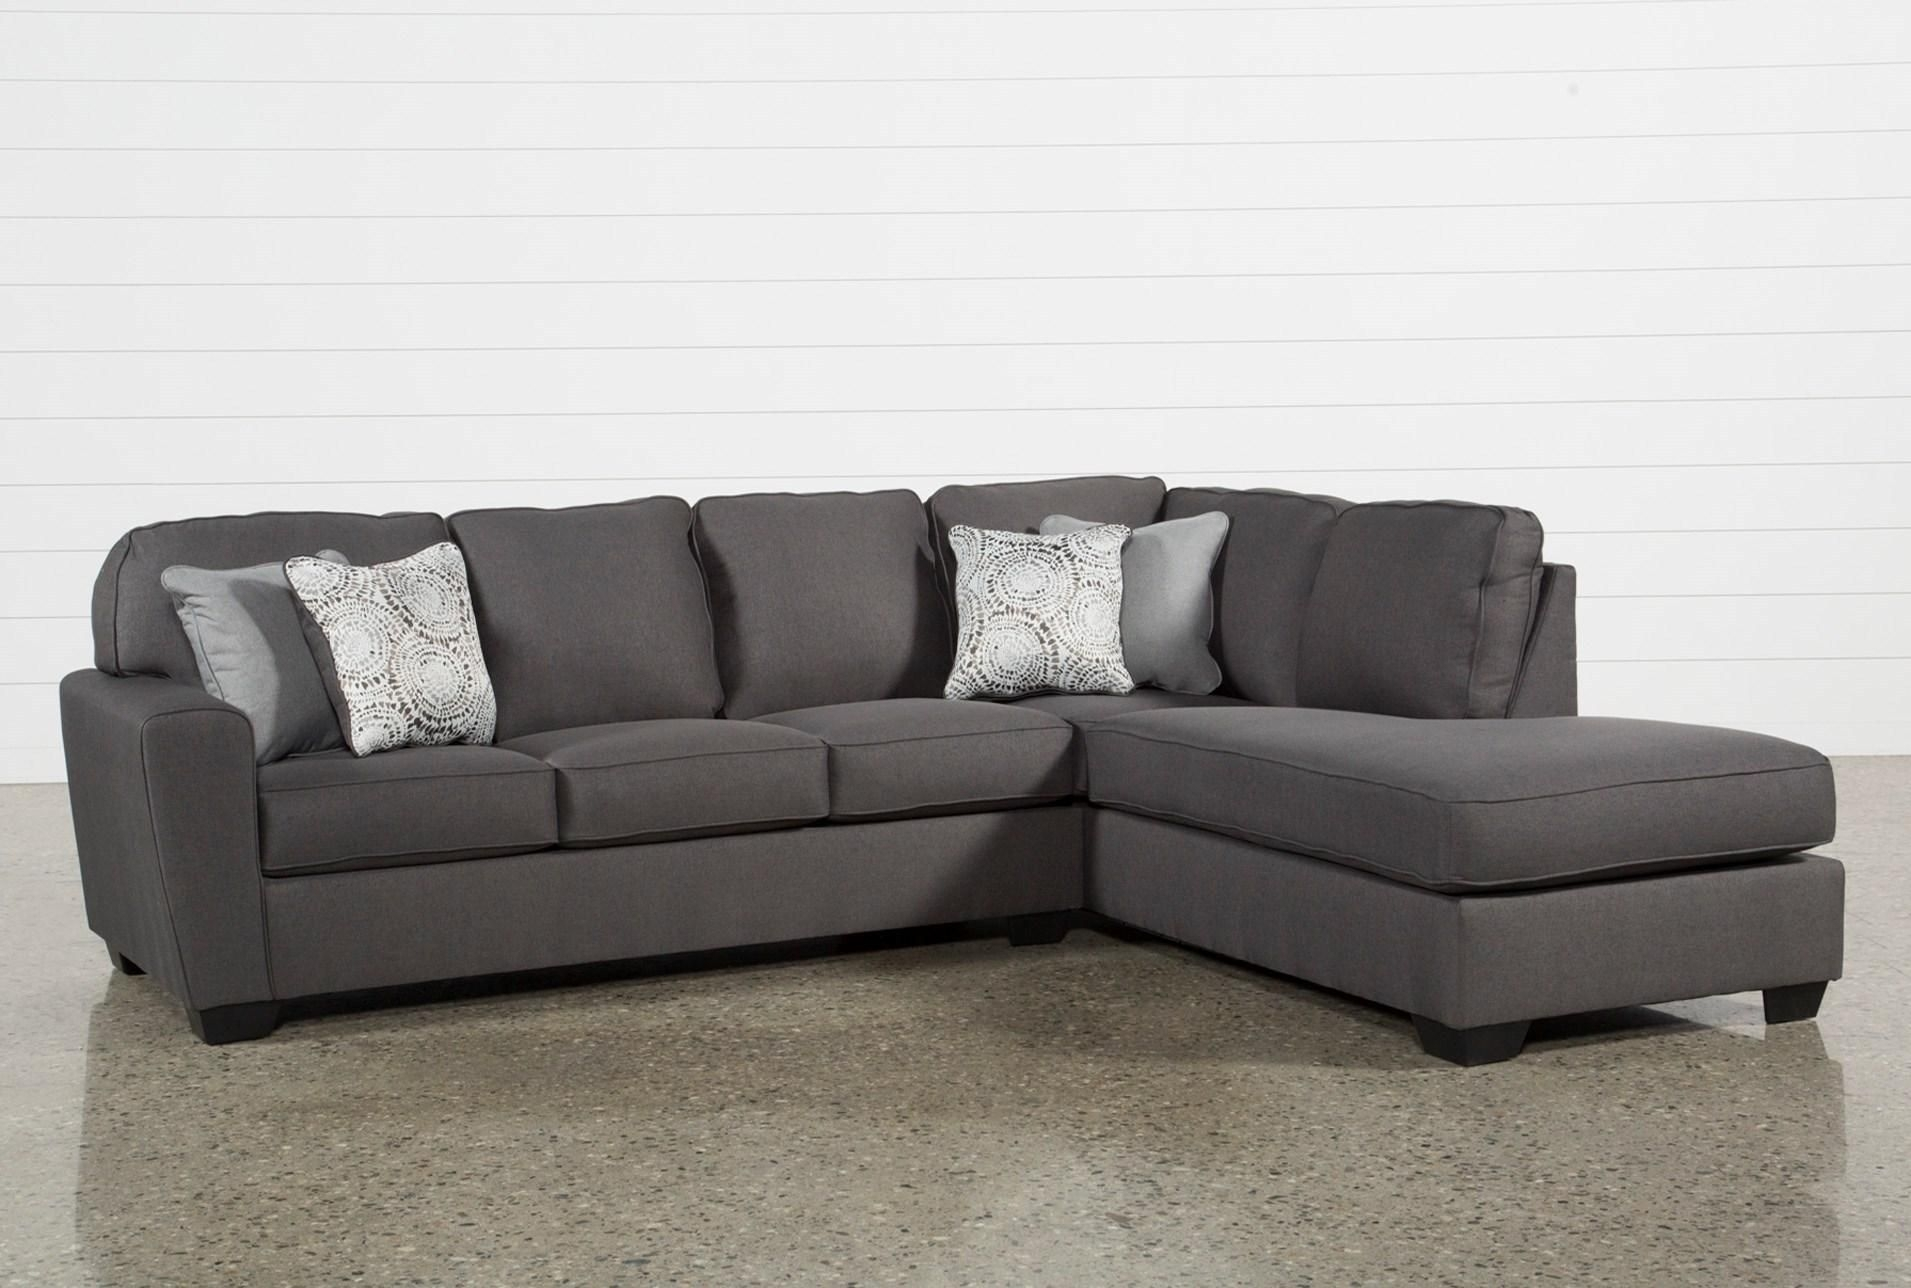 Mcdade Graphite 2 Piece Sectional W/raf Chaise | Livingroom Intended For Arrowmask 2 Piece Sectionals With Raf Chaise (Image 19 of 25)